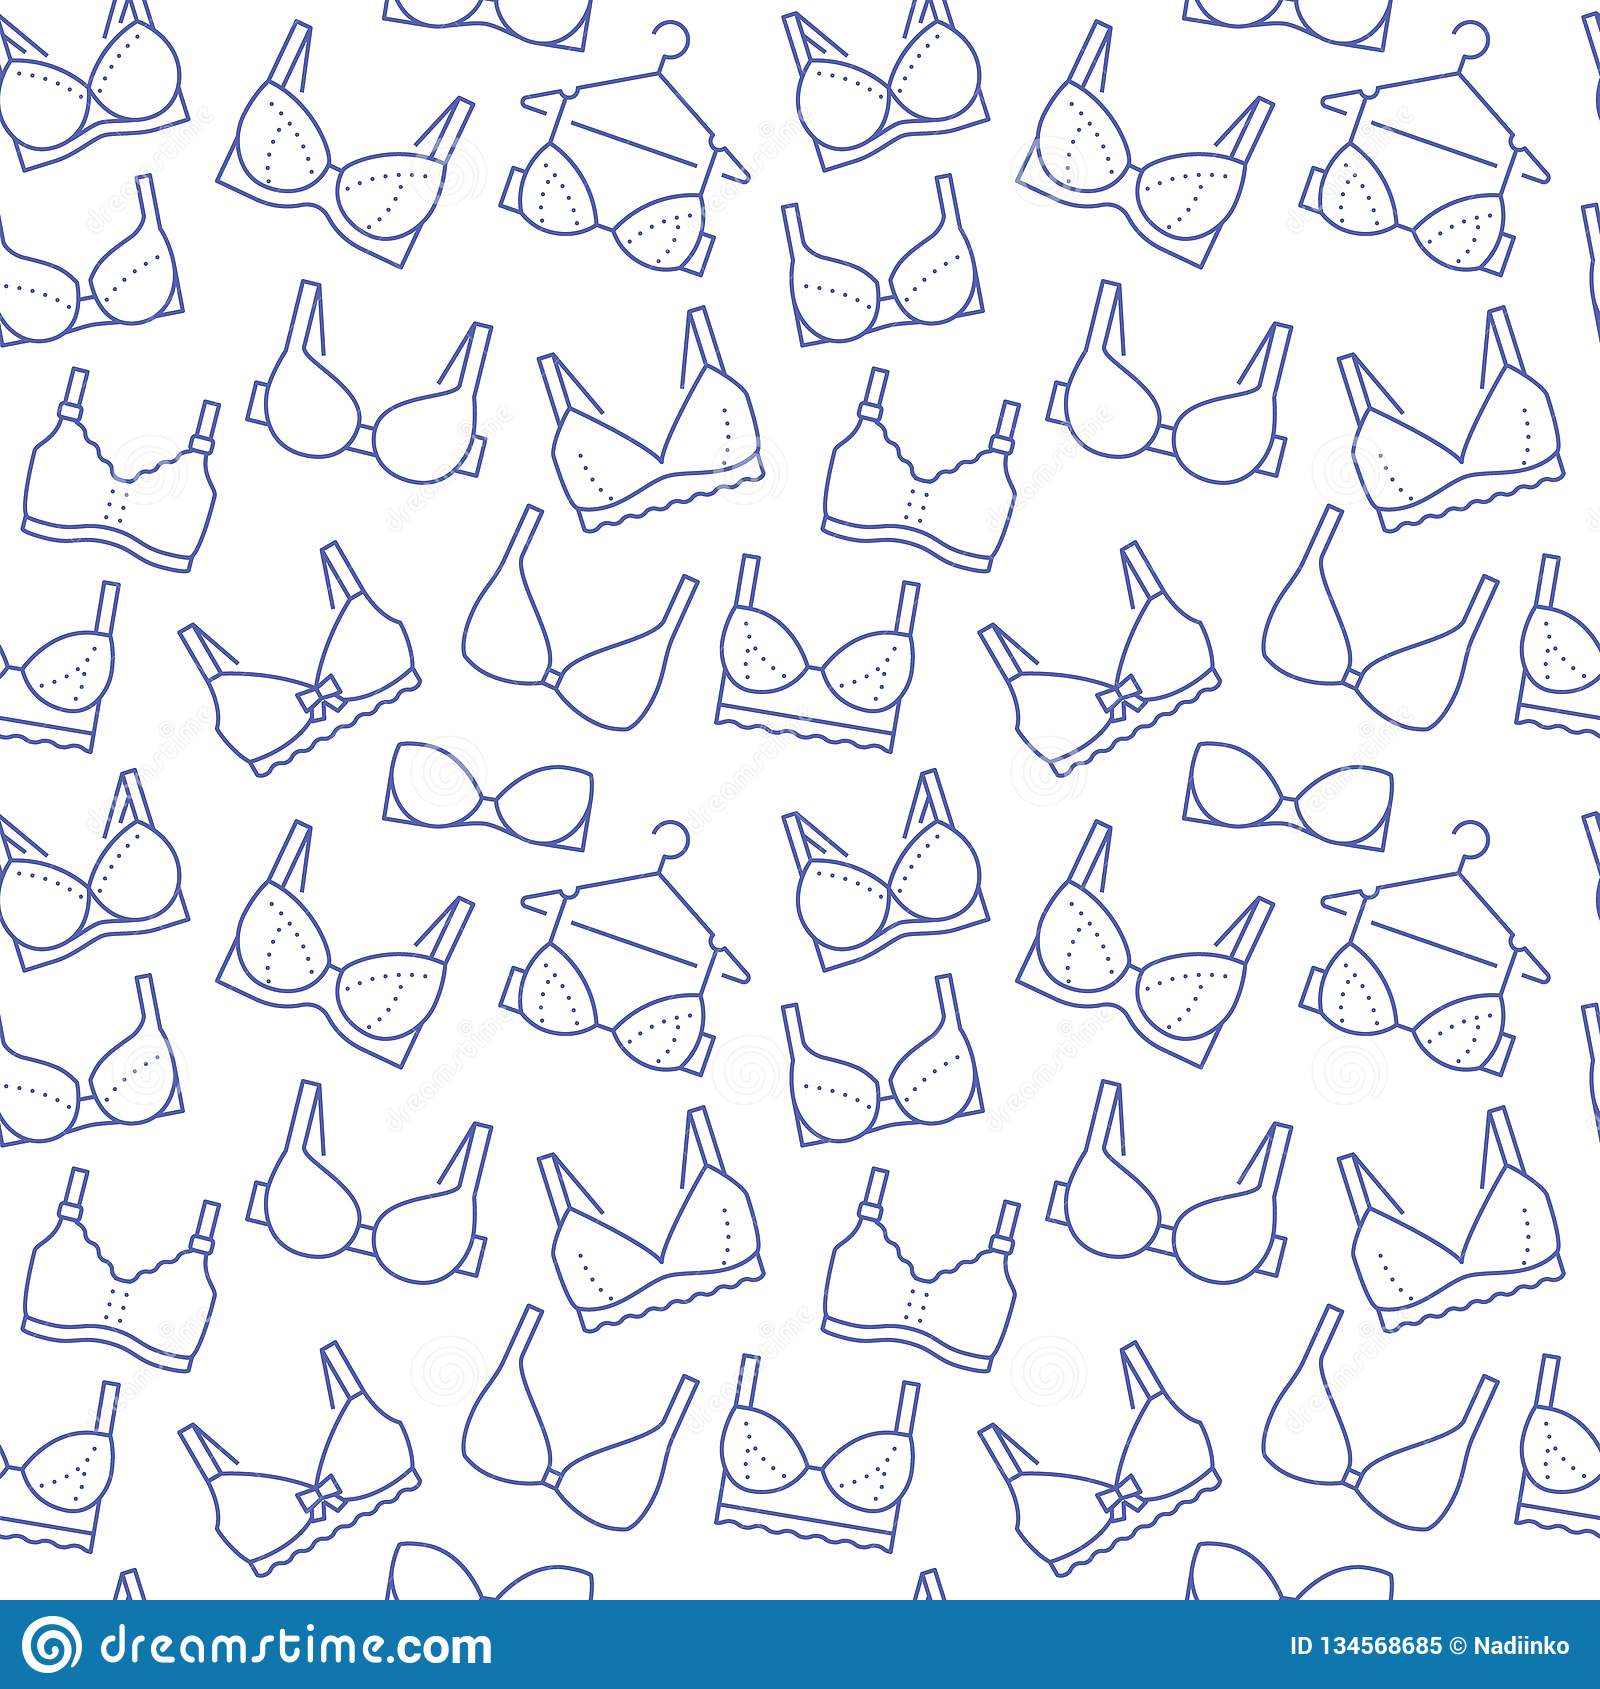 fa9557e10750 Lingerie seamless pattern with flat line icons of bra types. Woman underwear  background, vector